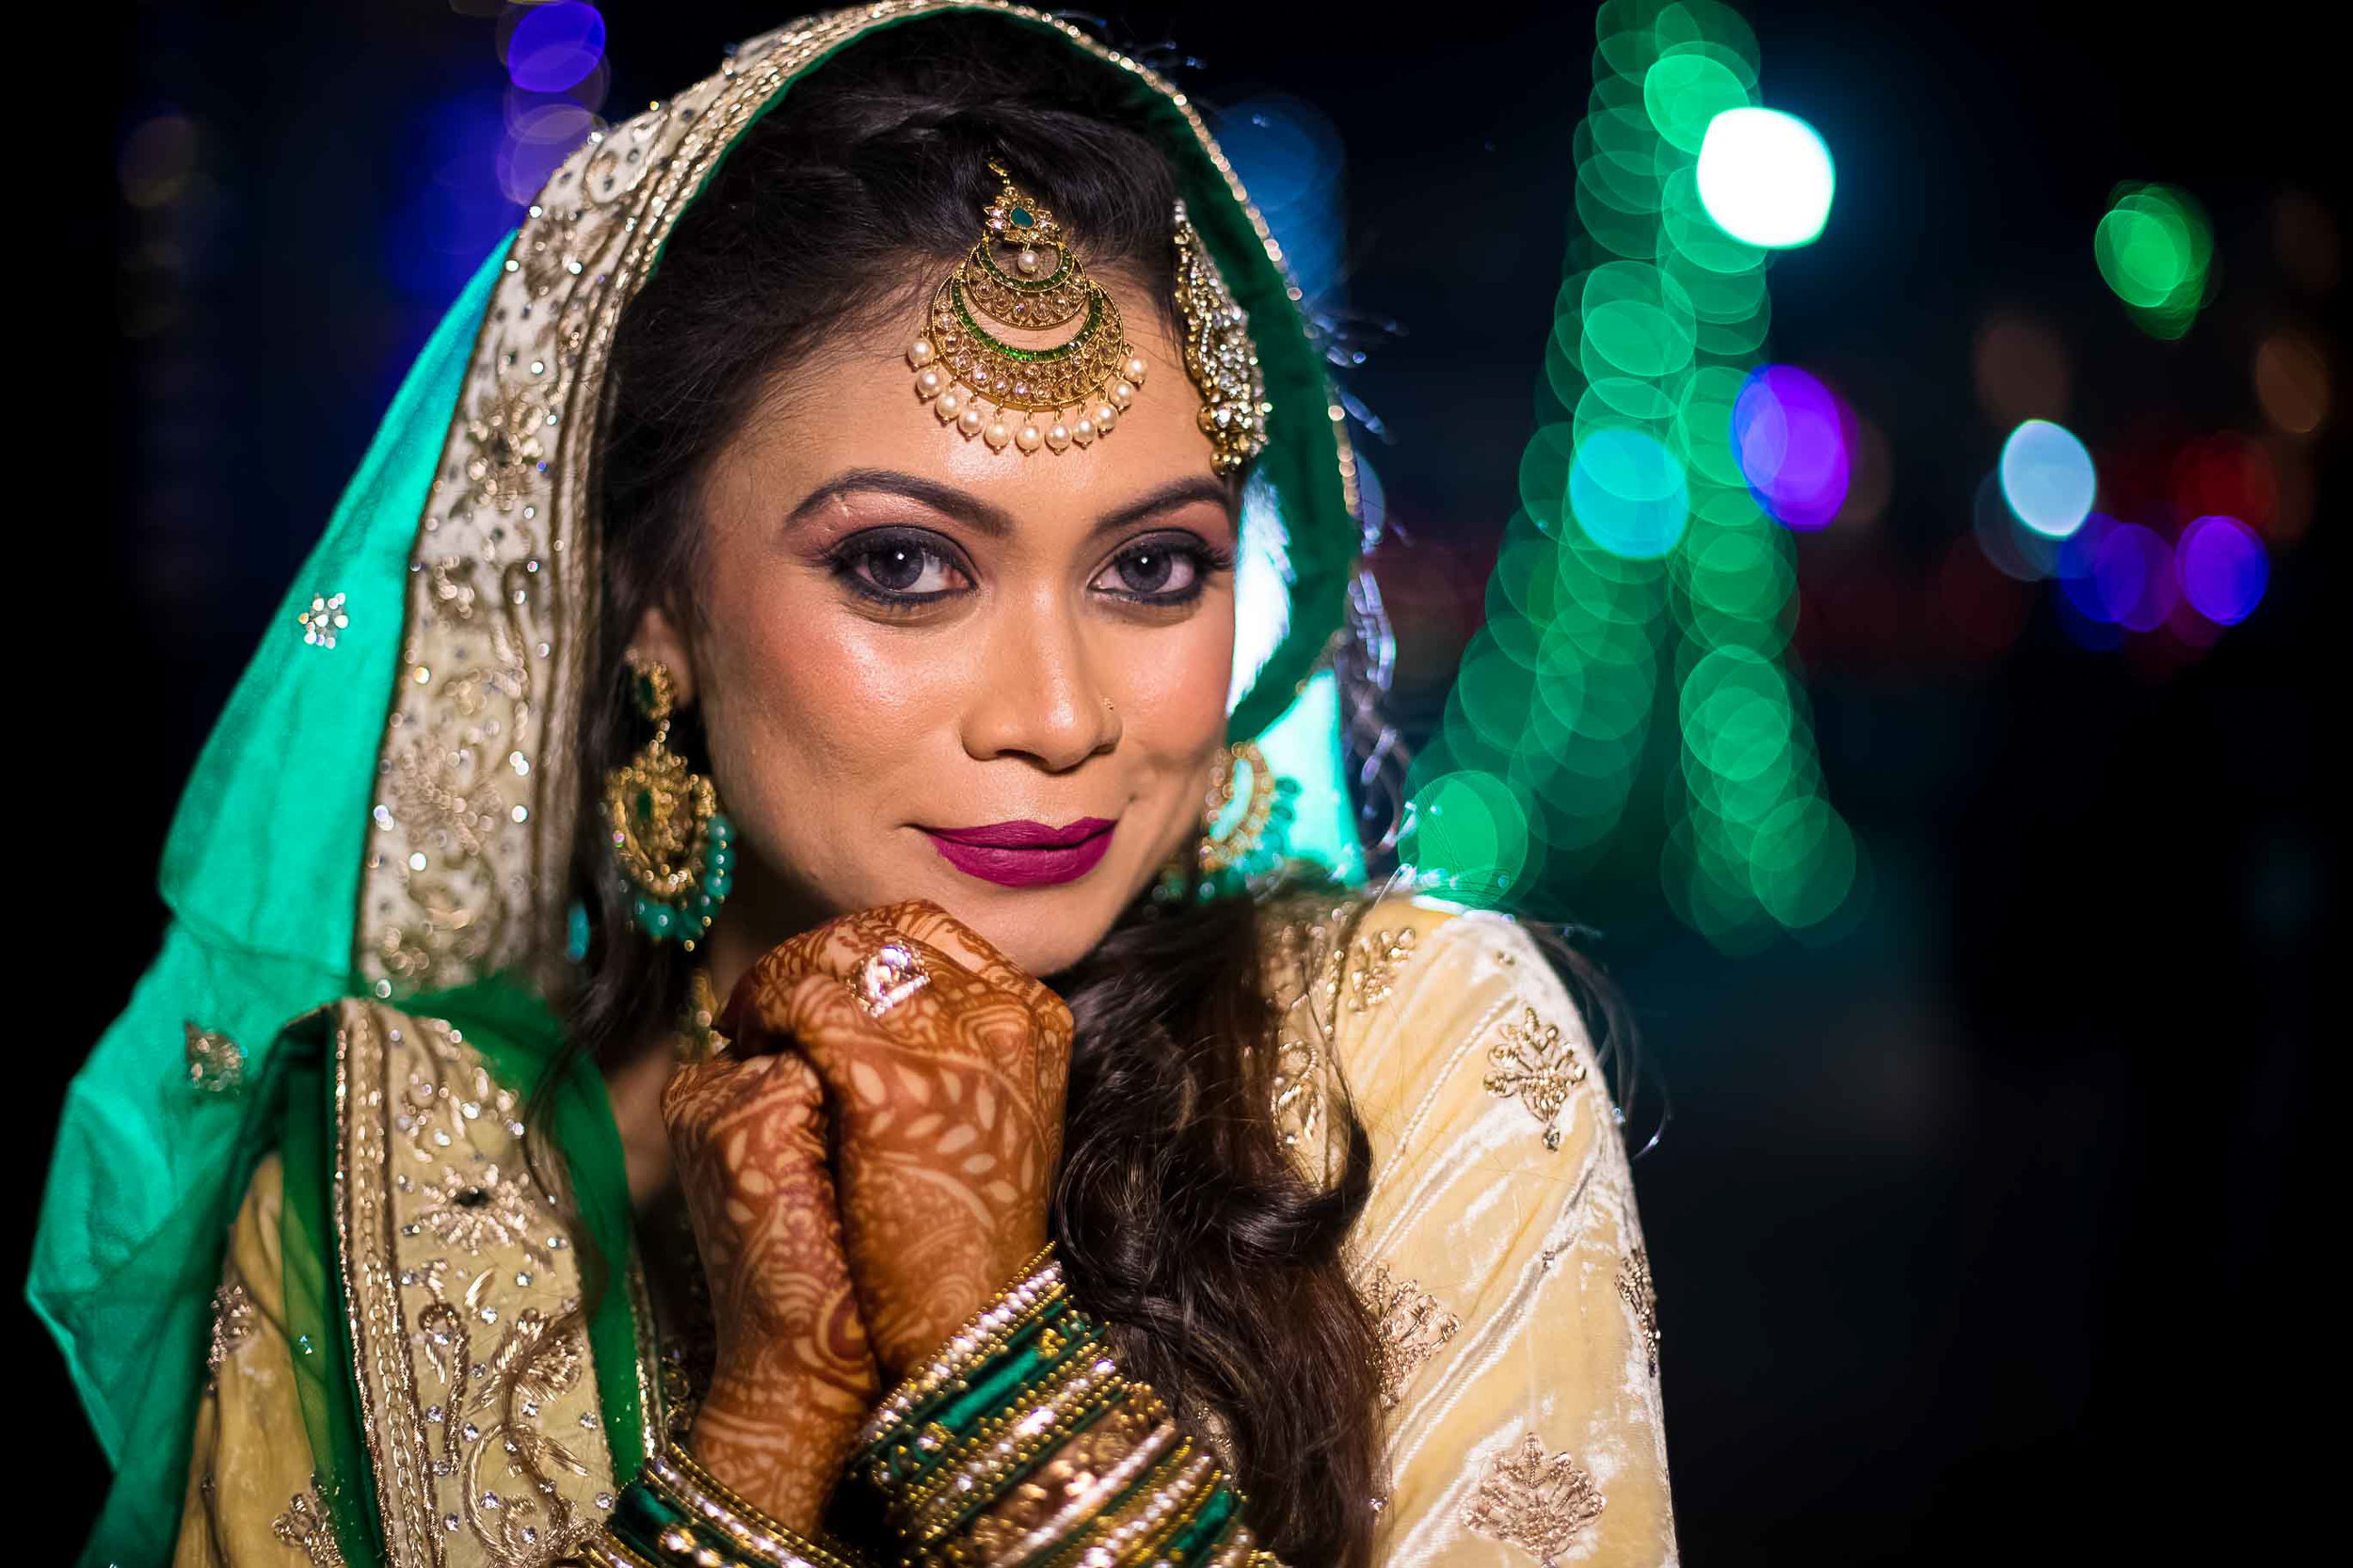 Pixel-Chronicles-Meraj-Yousuf-Candid-Wedding-Documentary-Photography-Beautiful-Bride-Best-Portrait-Muslim-Wedding-18.jpg